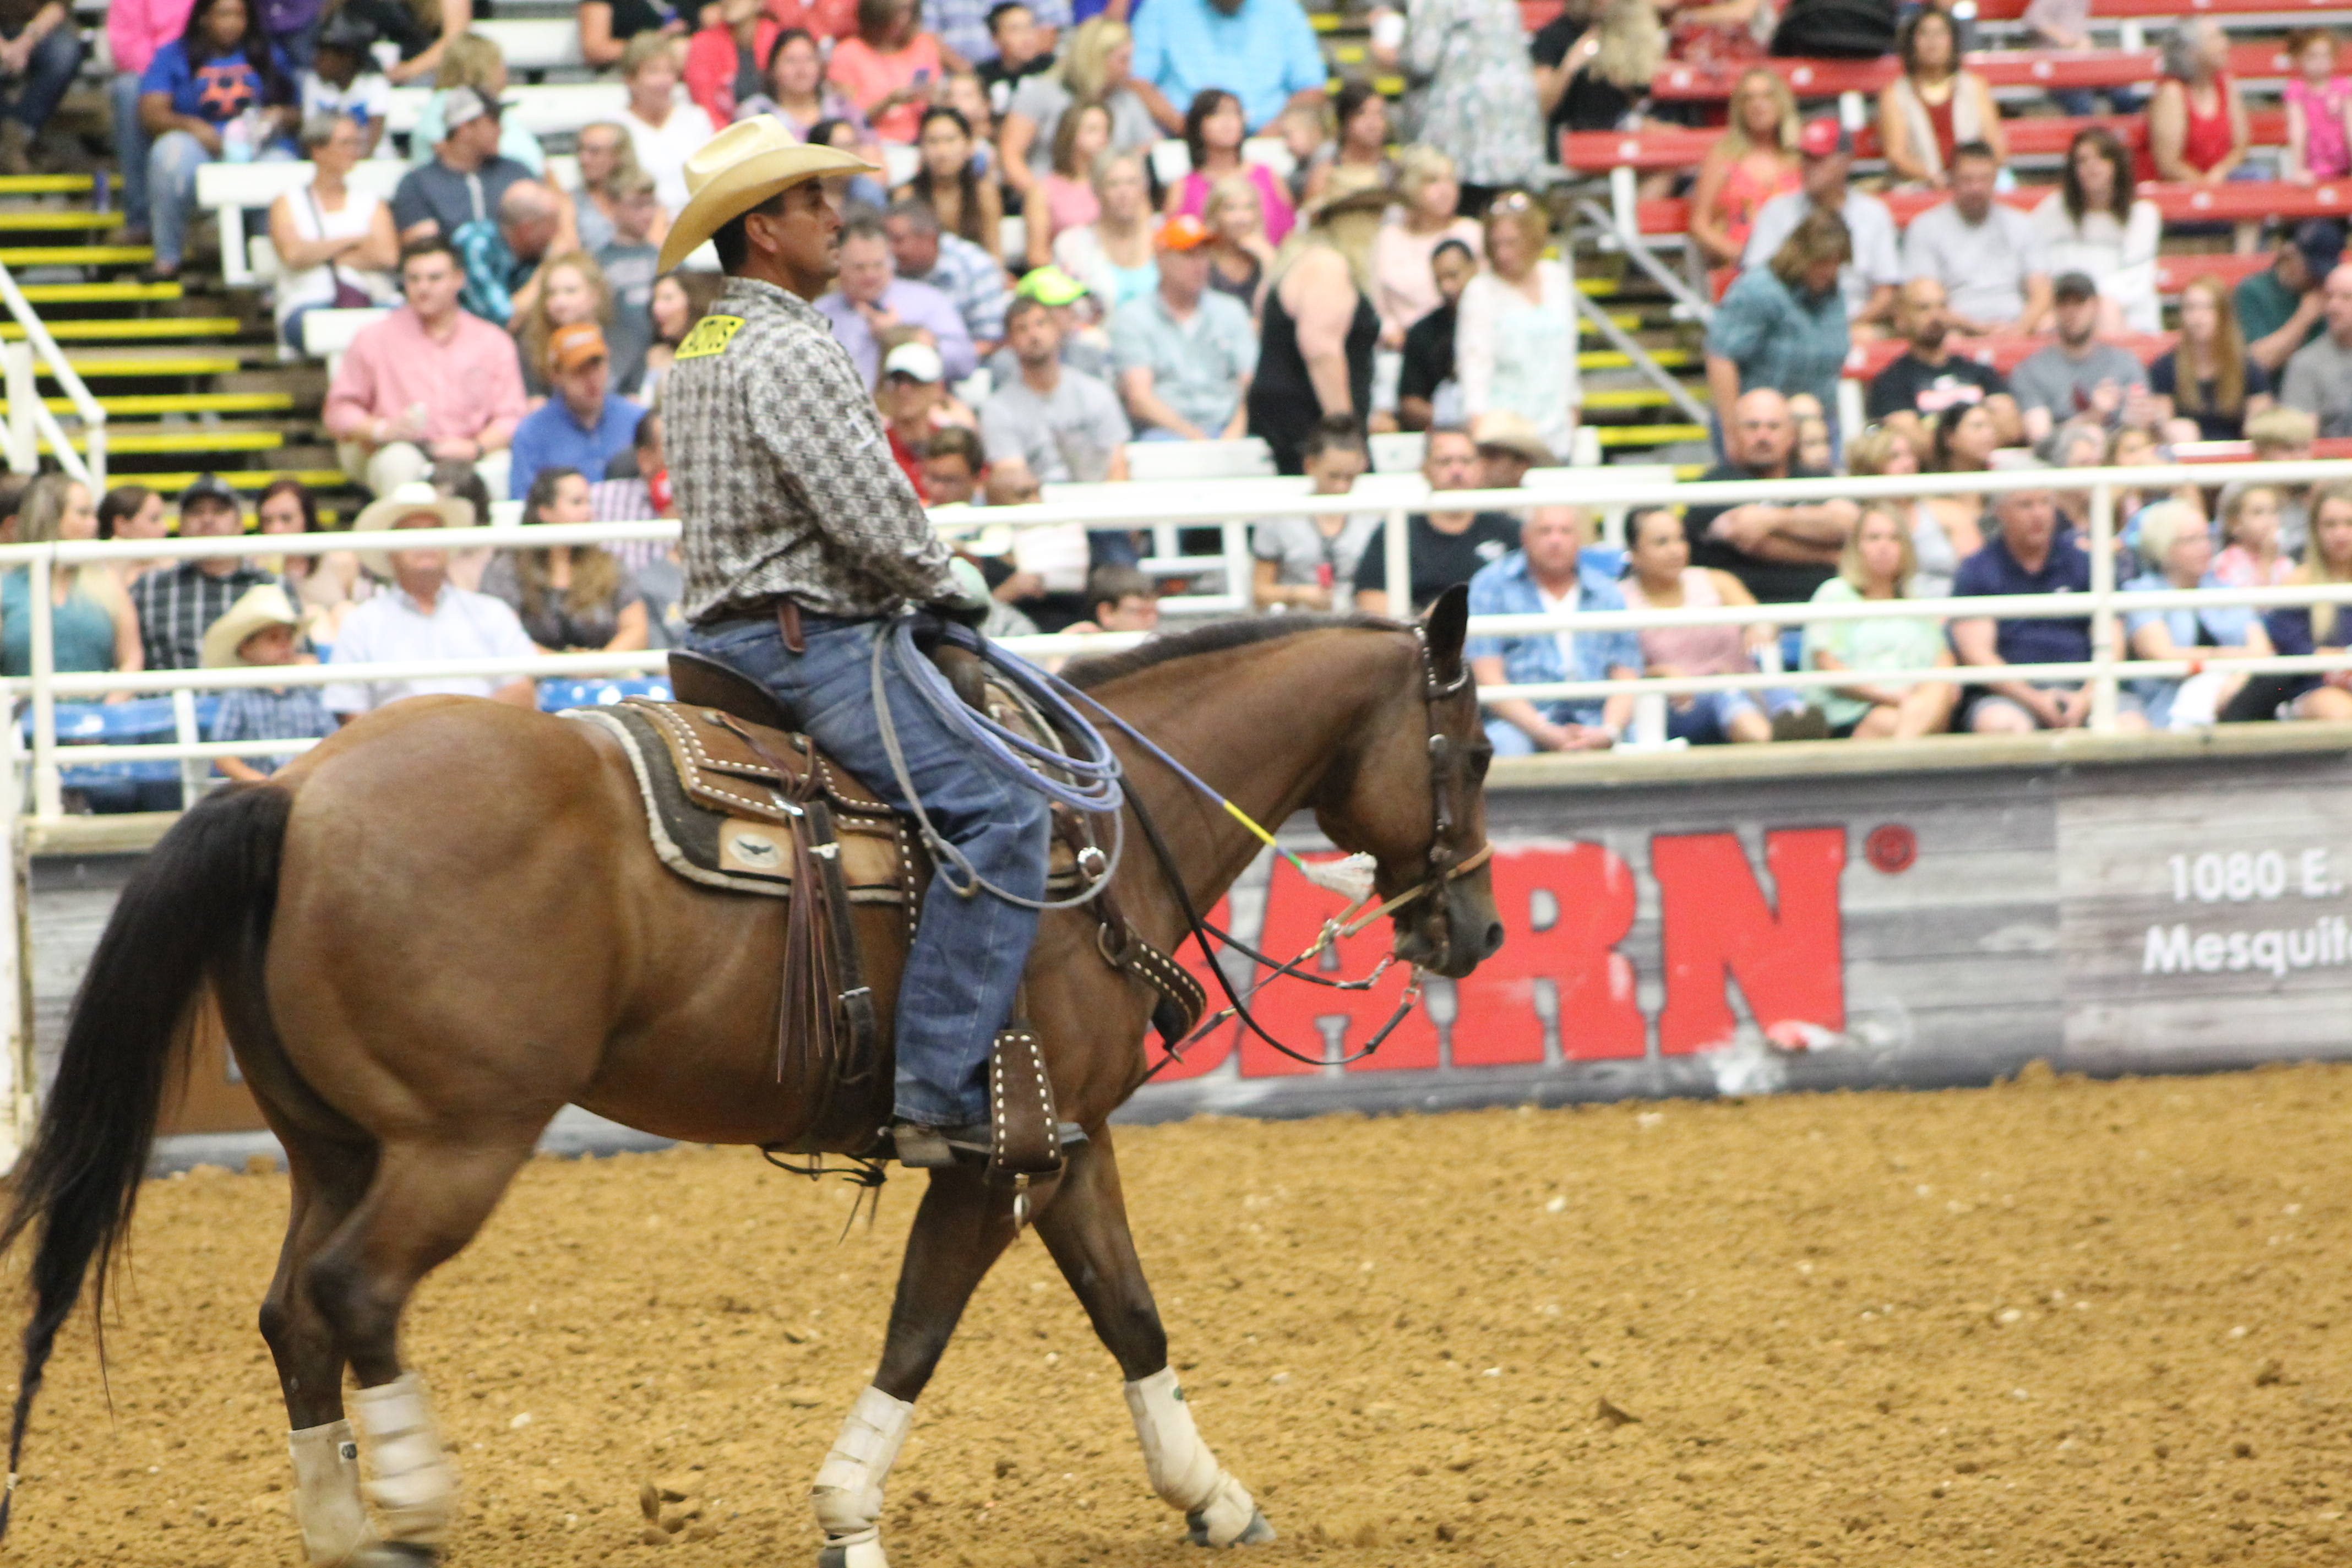 A Night Of Family Fun At The Mesquite Tx Rodeo Hustle